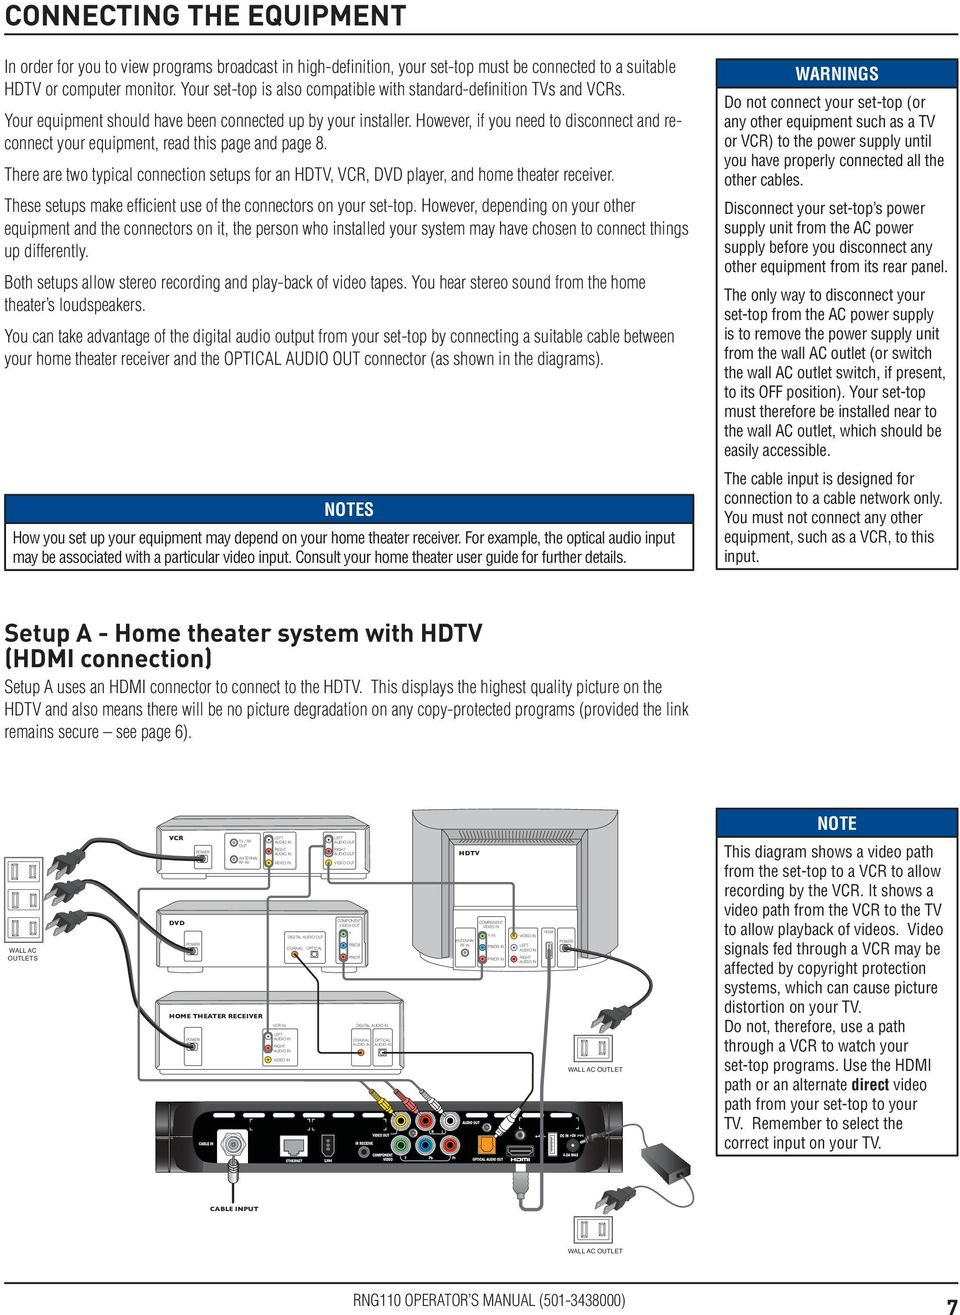 However, if you need to disconnect and reconnect your equipment, read this page and page 8. There are two typical connection setups for an HDTV, VCR, DVD player, and home theater receiver.